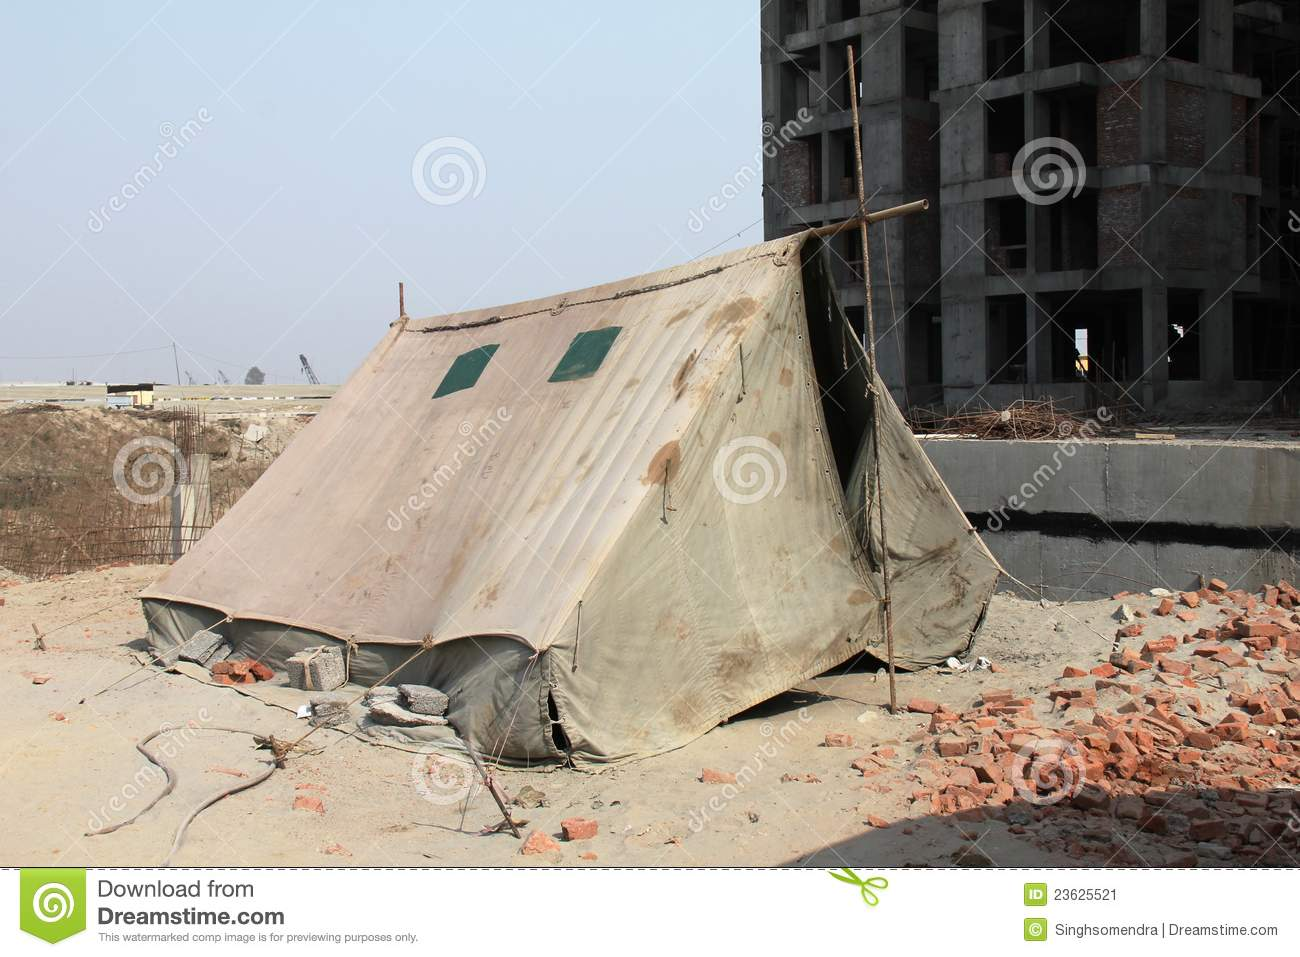 Construction Tents And Shelters : A temporary shelter tent under construction site stock